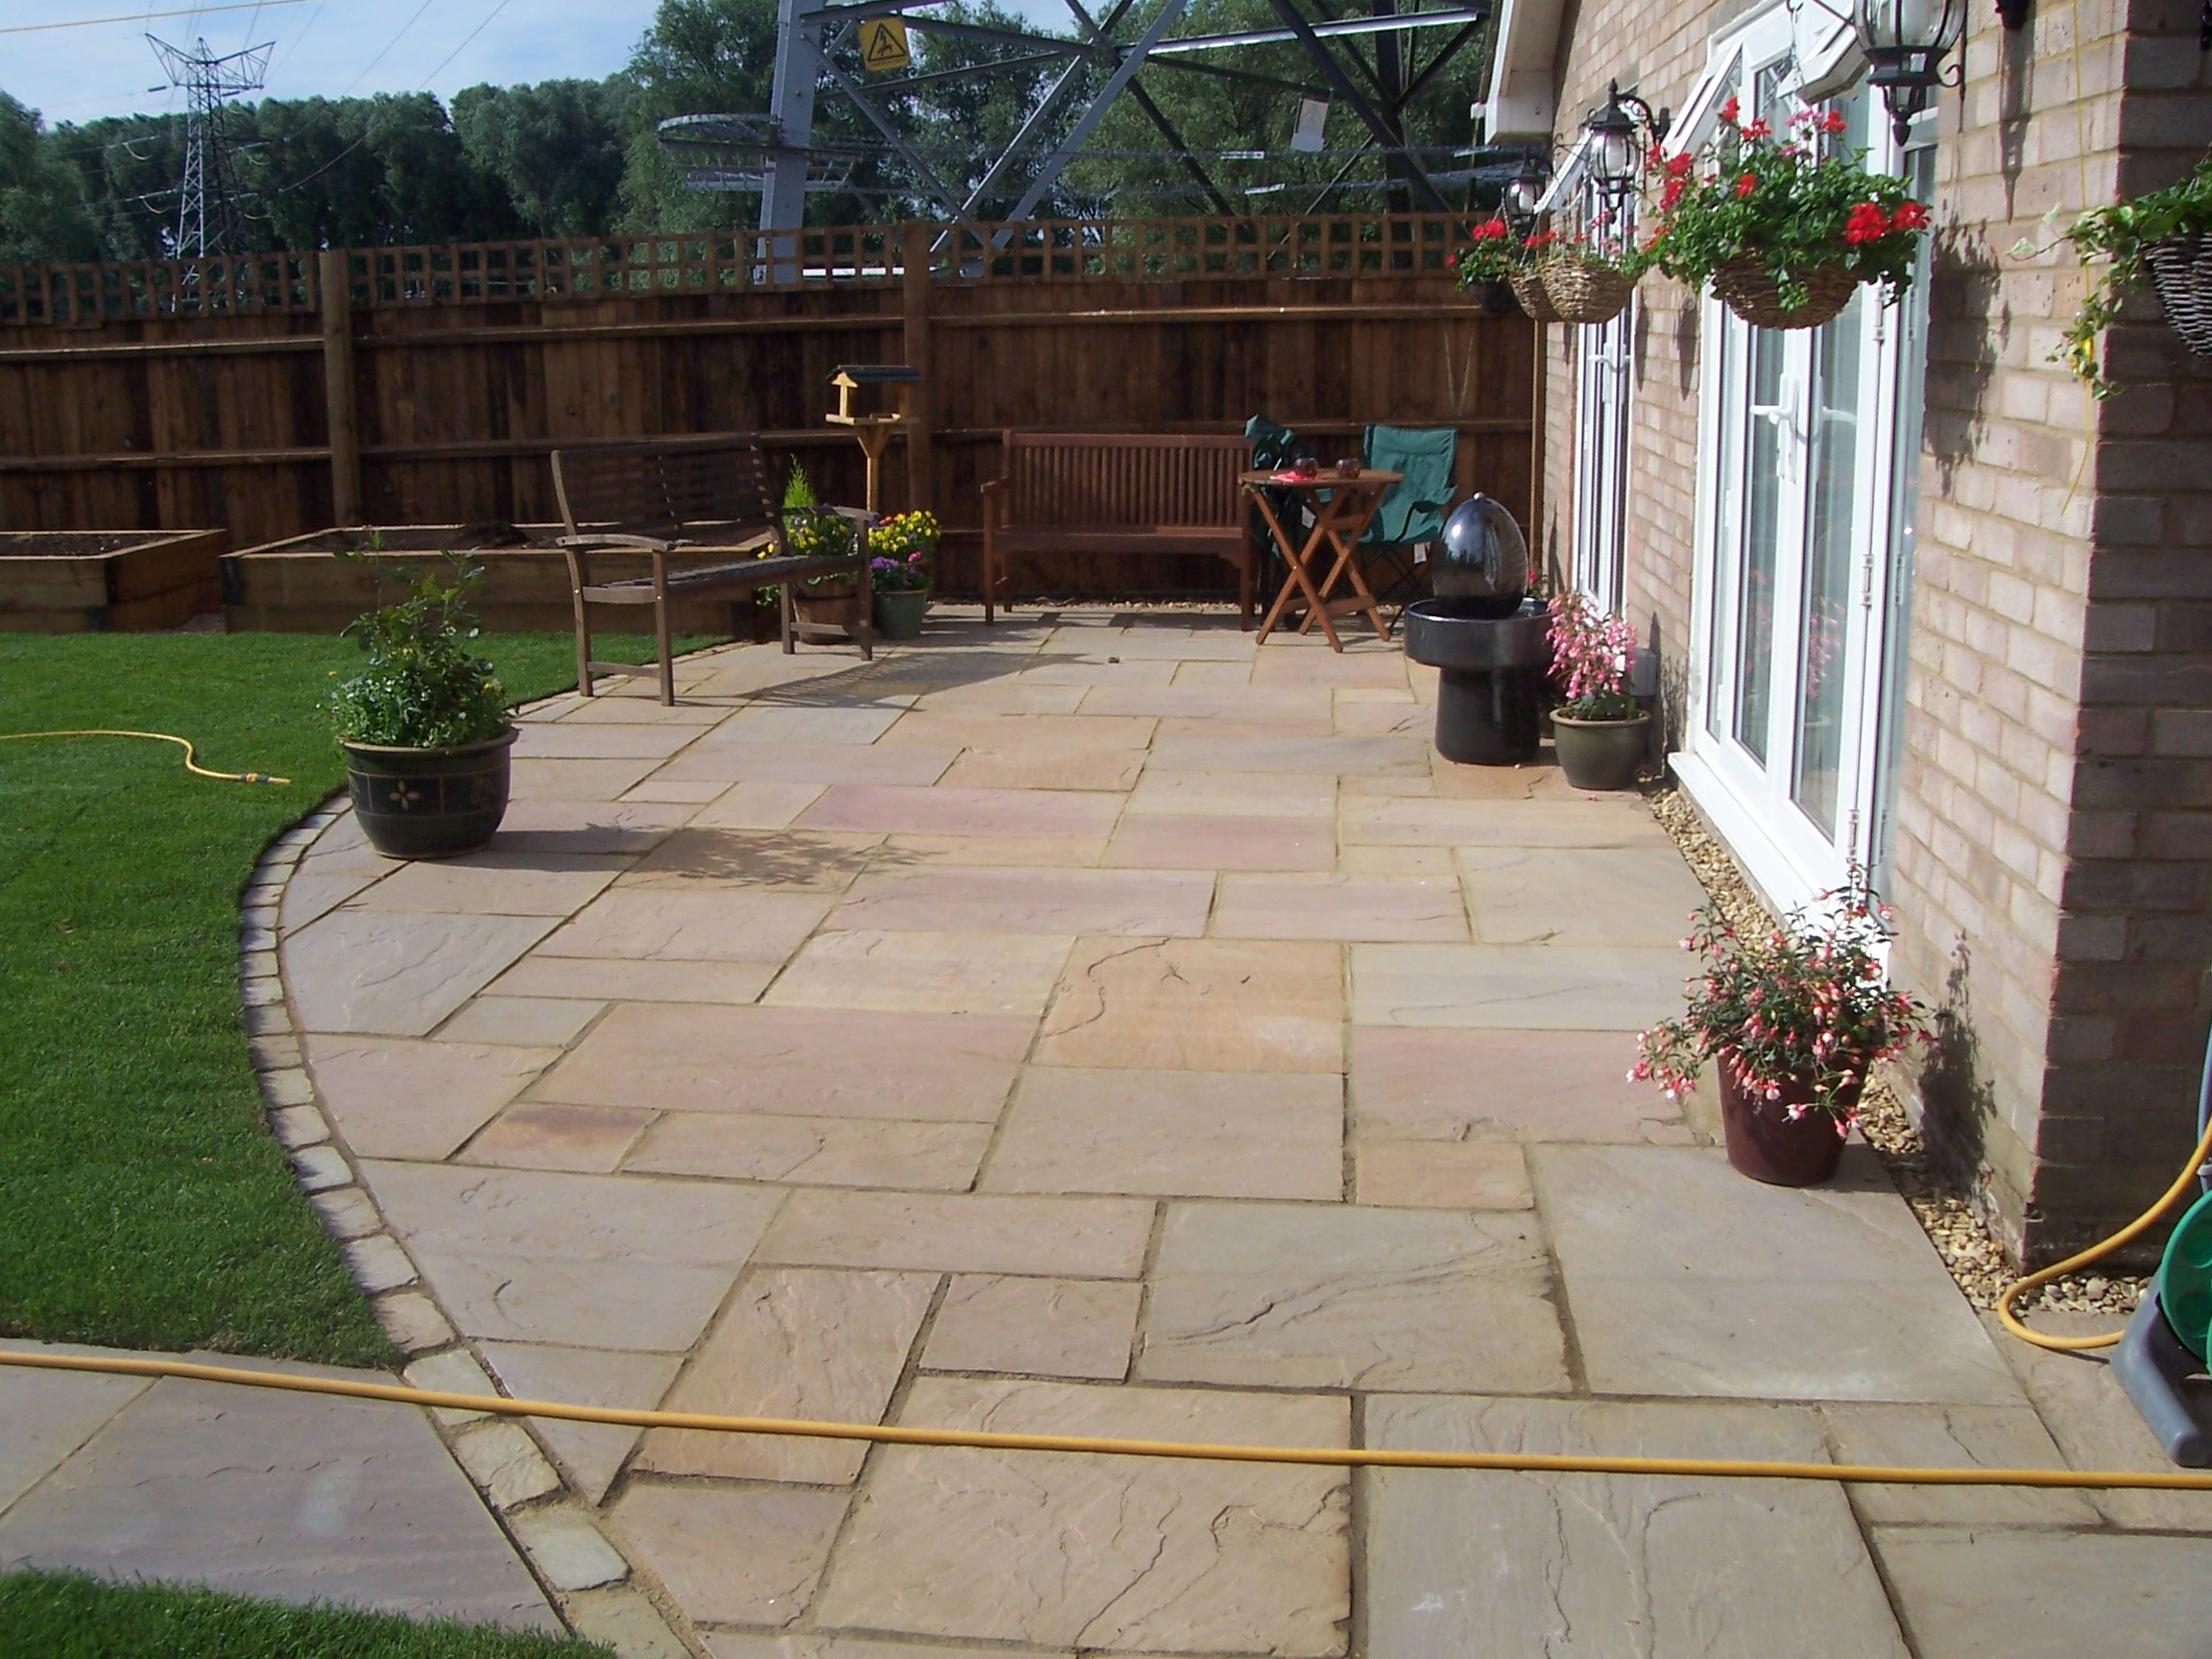 Boyde landscapes bedford block paving and driveways for Paved garden designs ideas